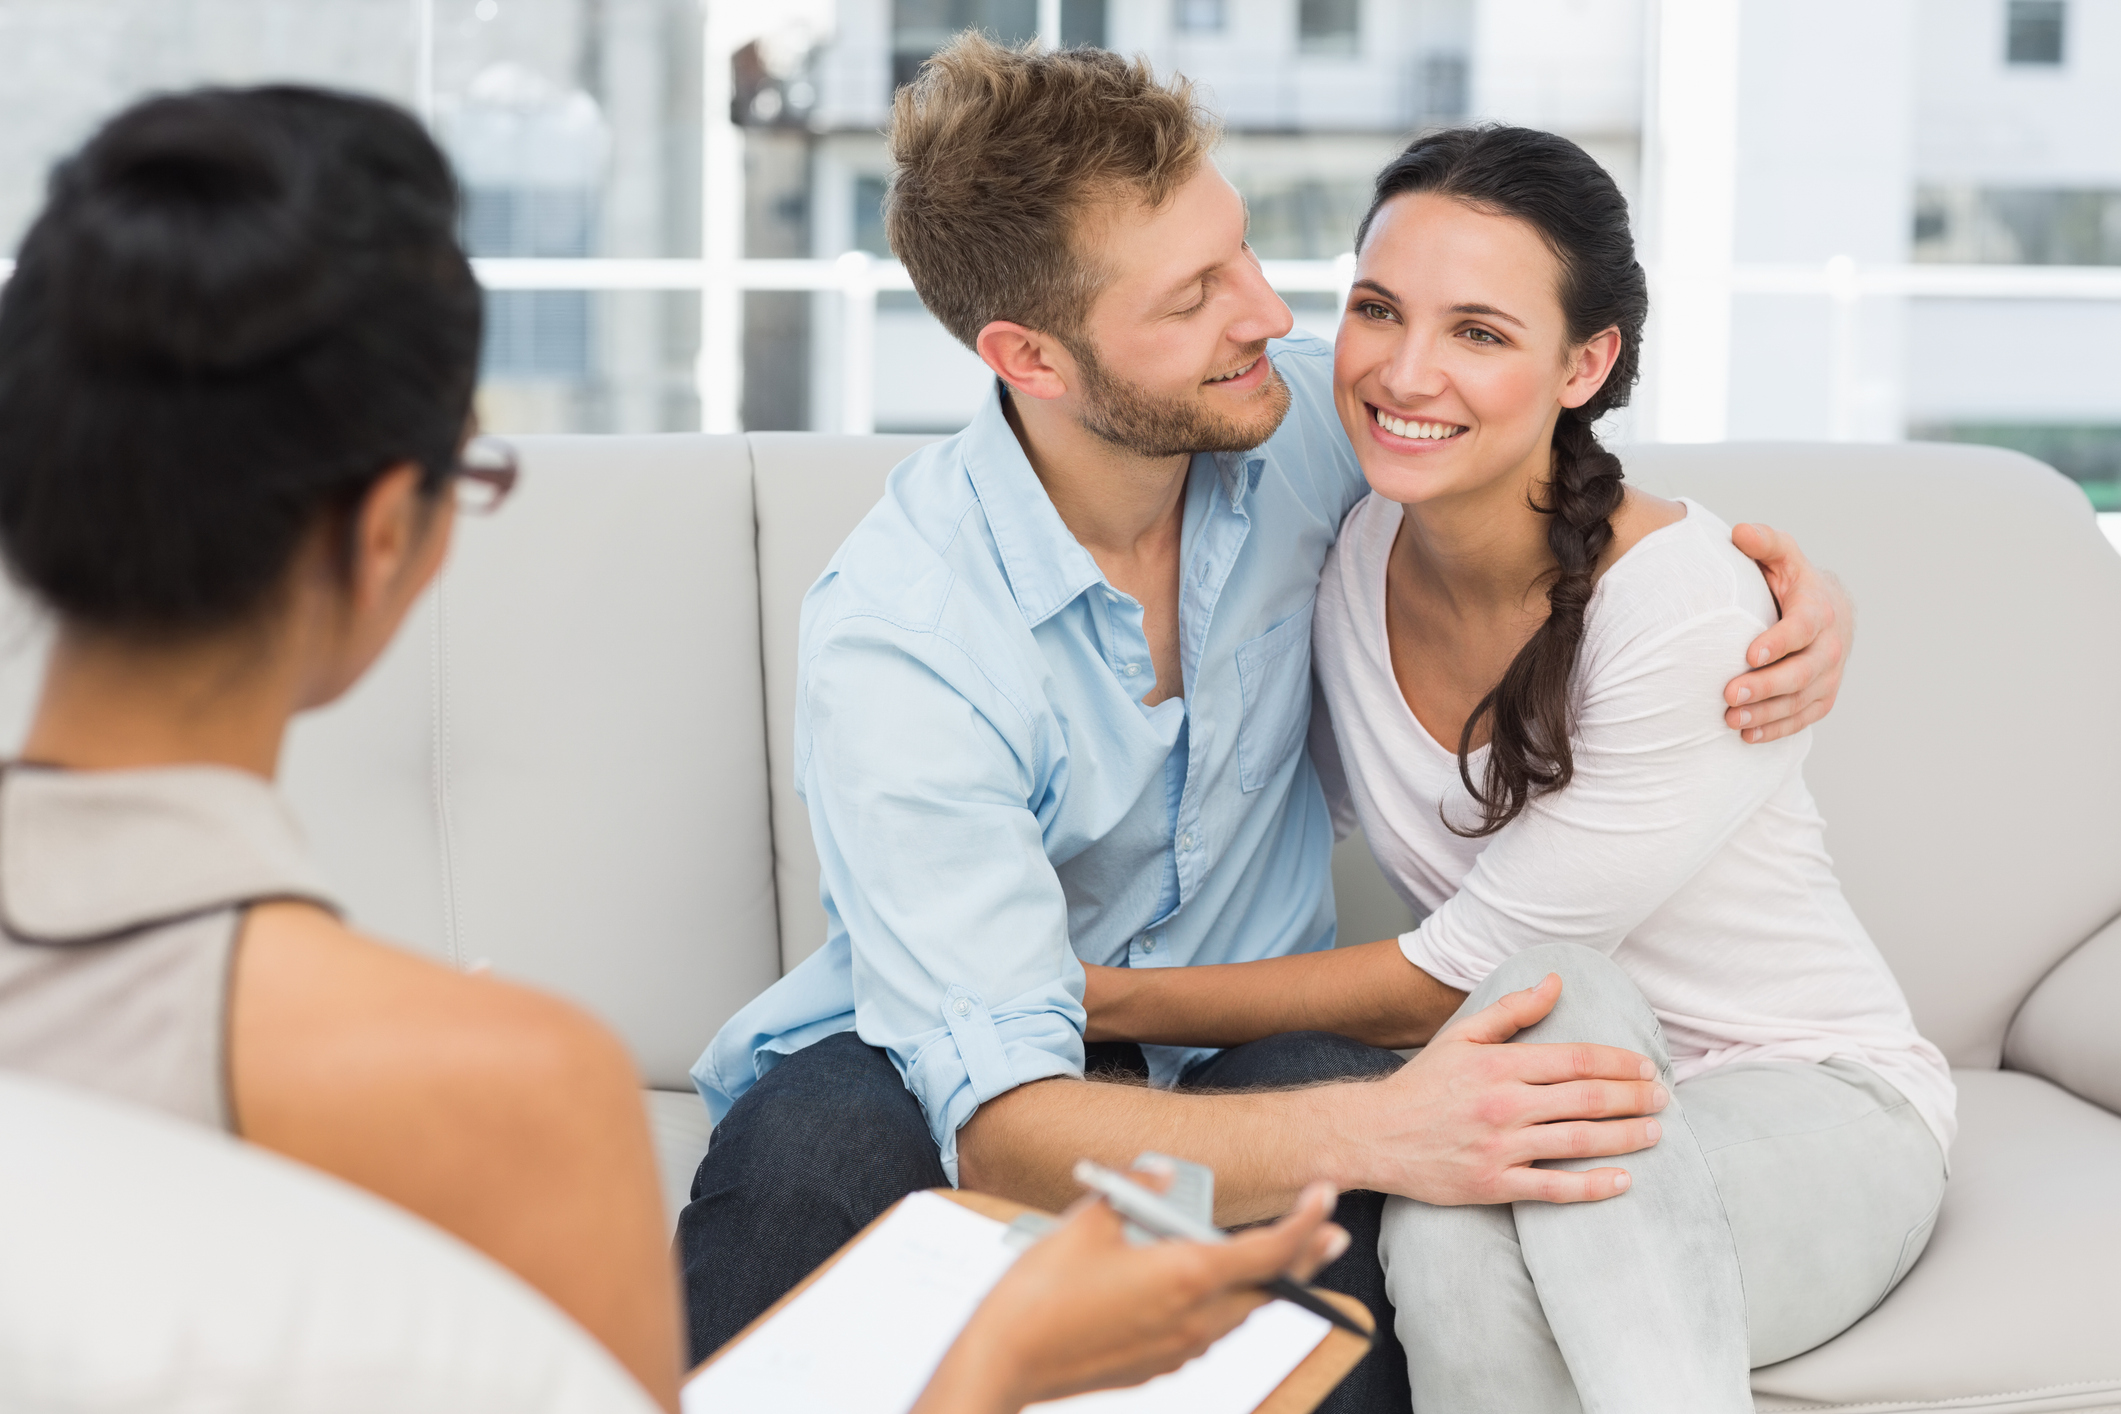 Our leading relationship experts - are highly skilled in the latest modalities in neuroscience and attachment therapy.